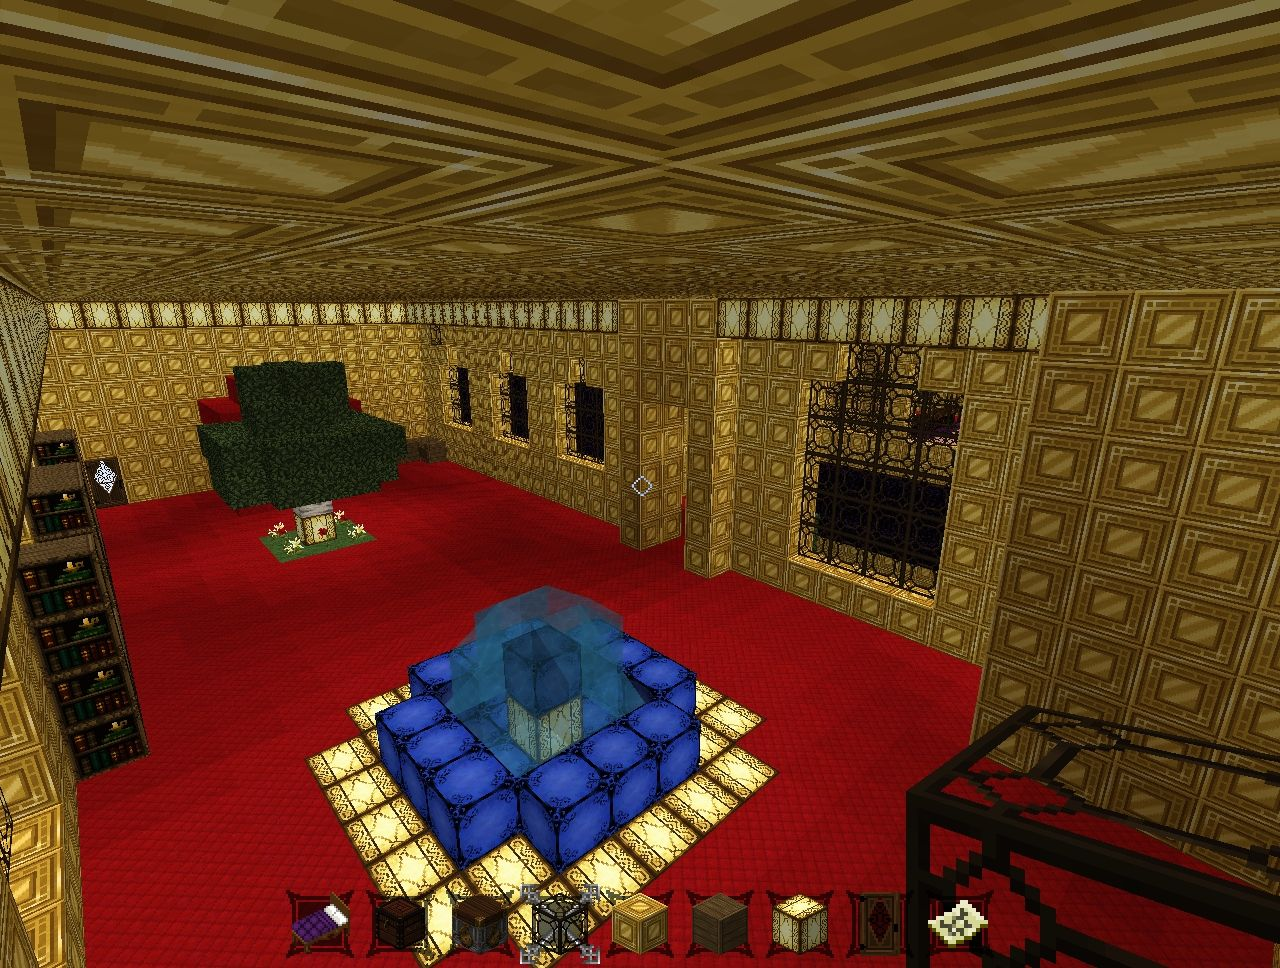 King and Queens' room